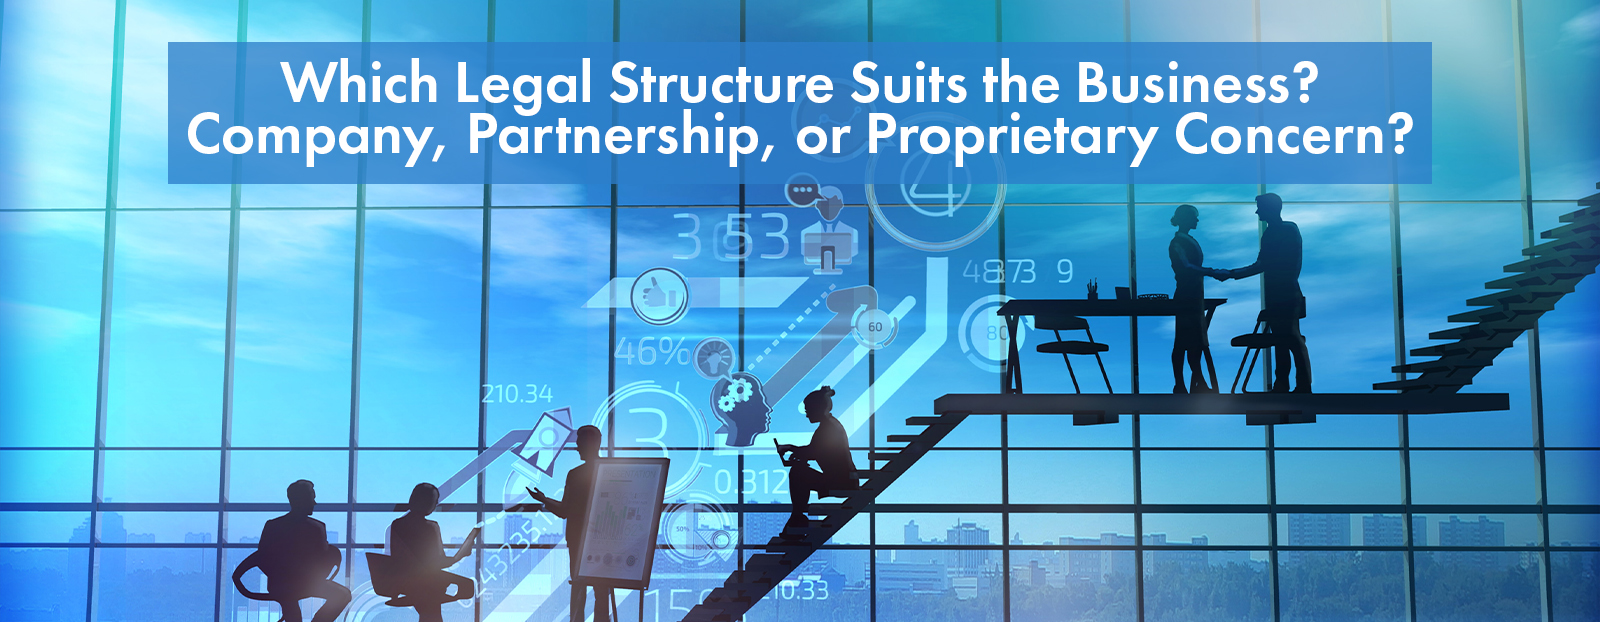 Which Legal Structure Suits the Business? Company, Partnership, or Proprietary Concern?